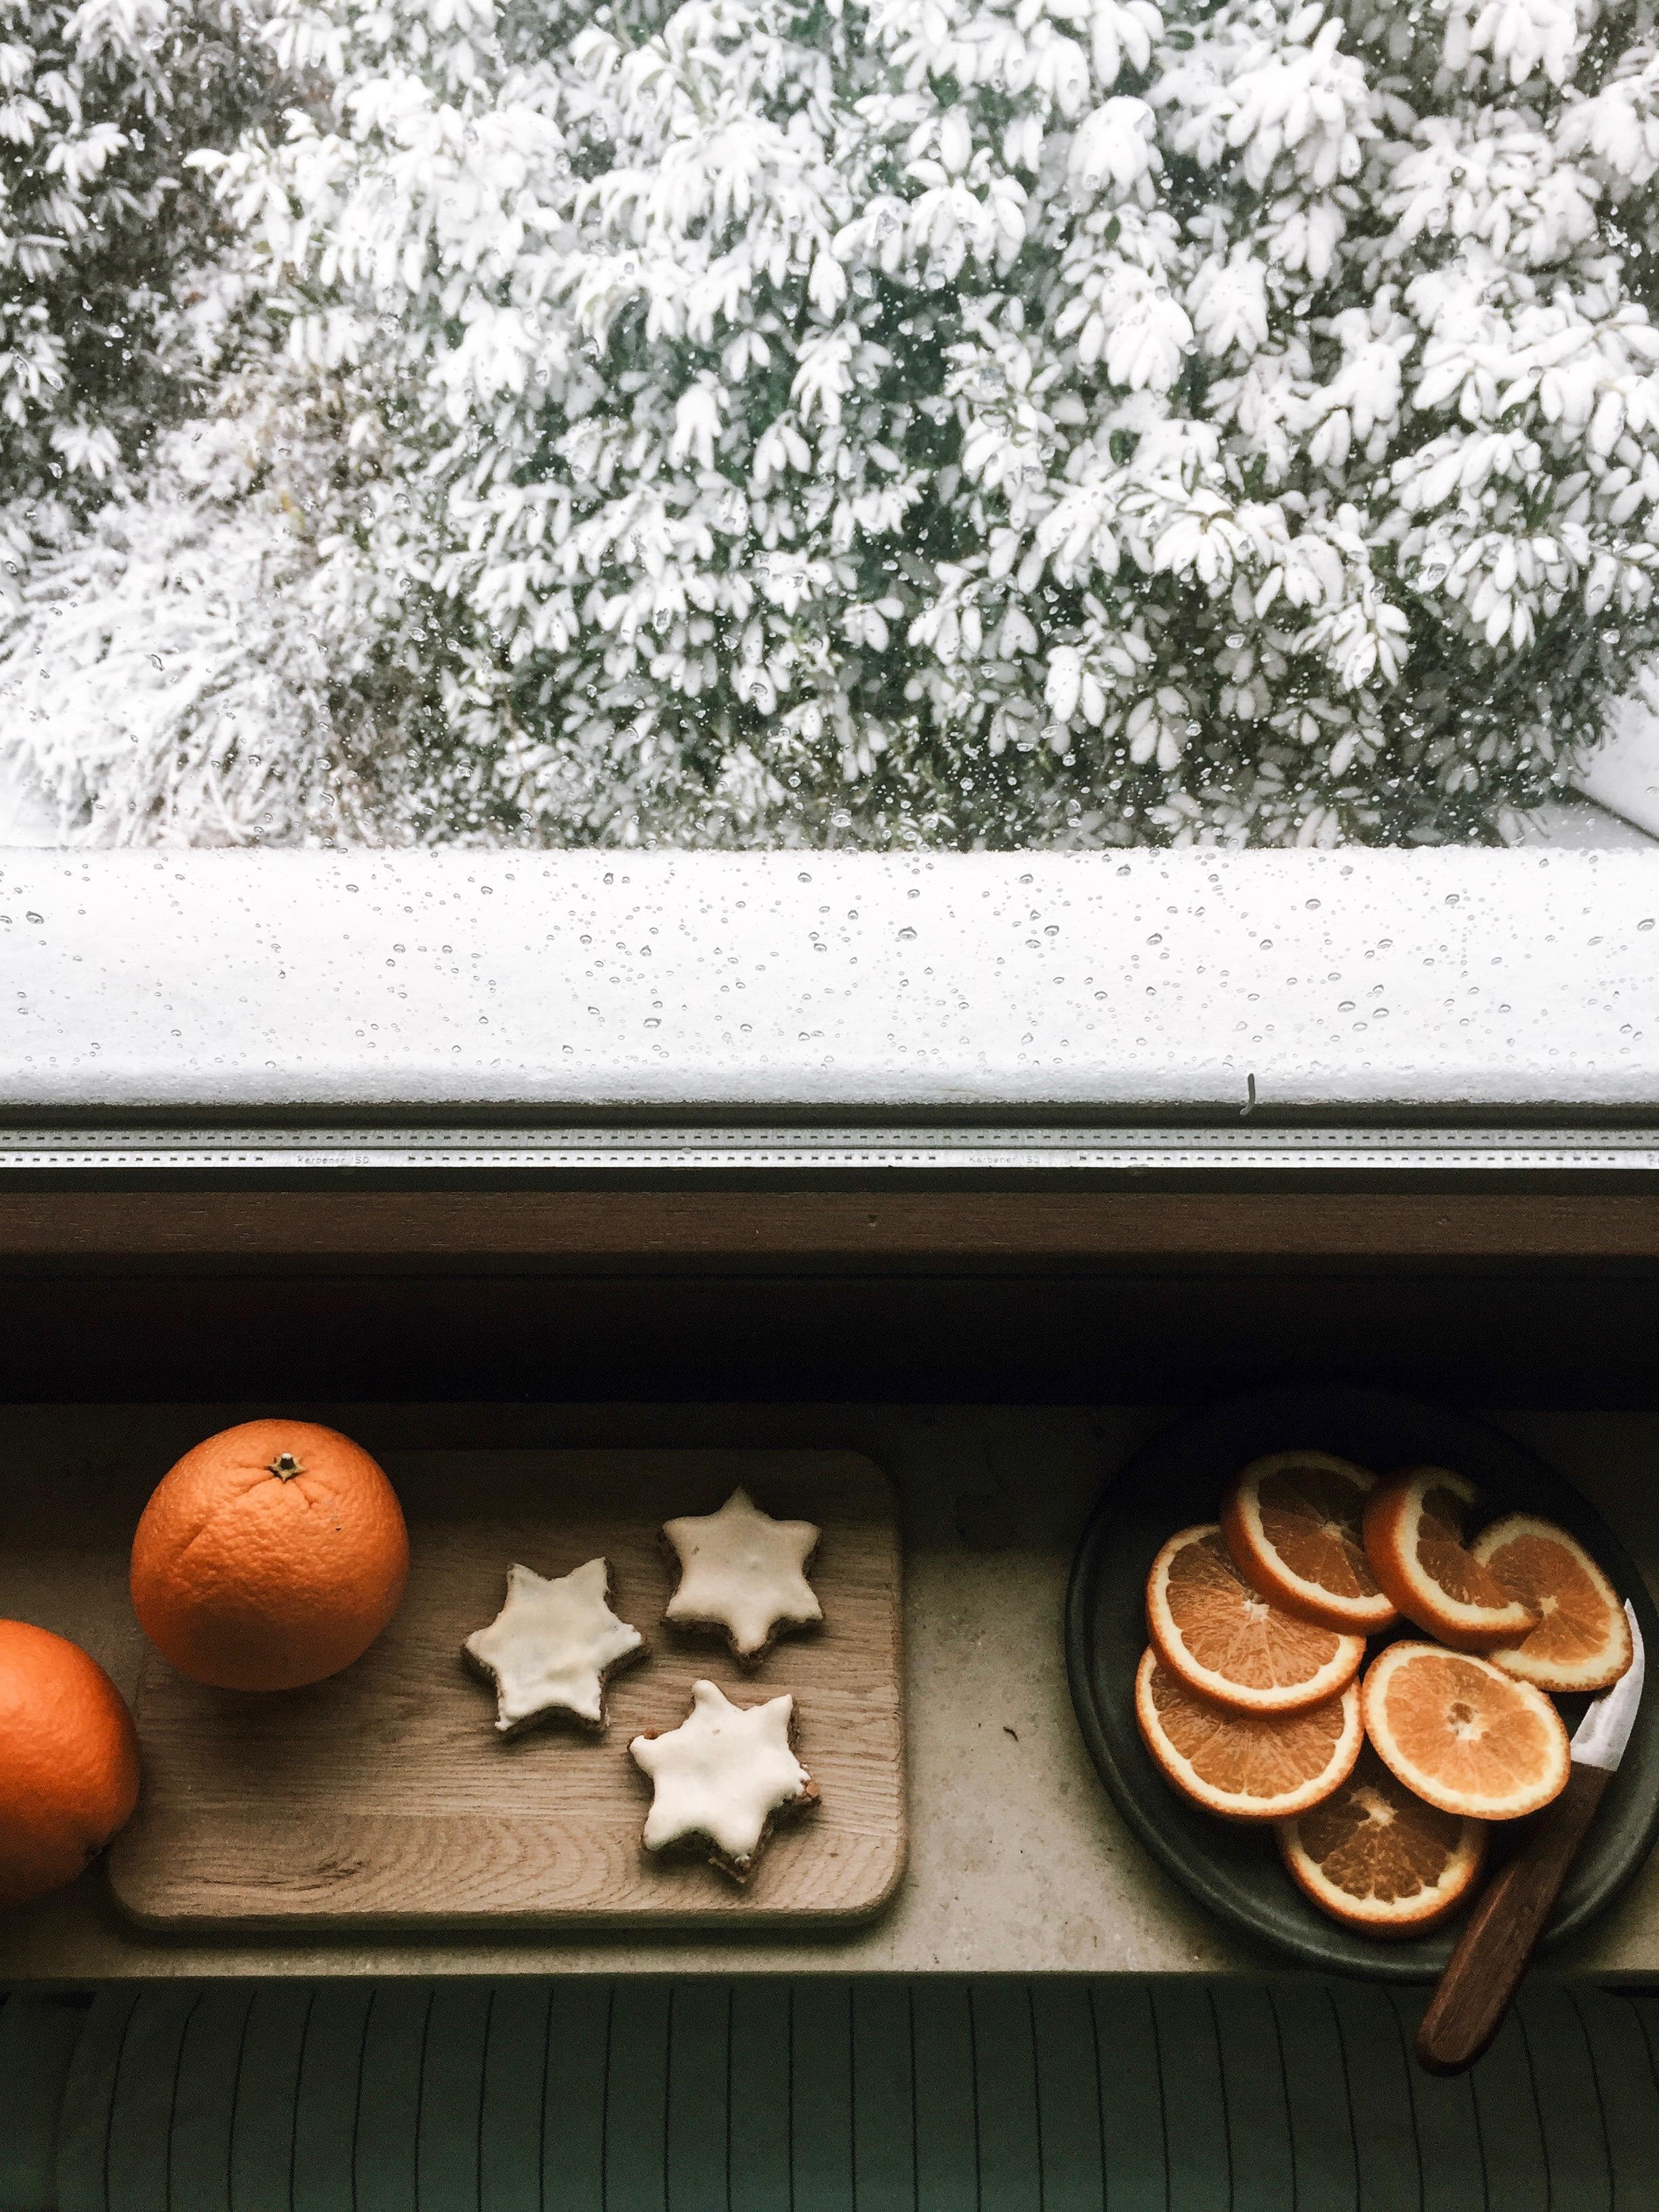 Wintertag. #winter #snow #christmas #decoration #white #plätzchen #kitchen #home